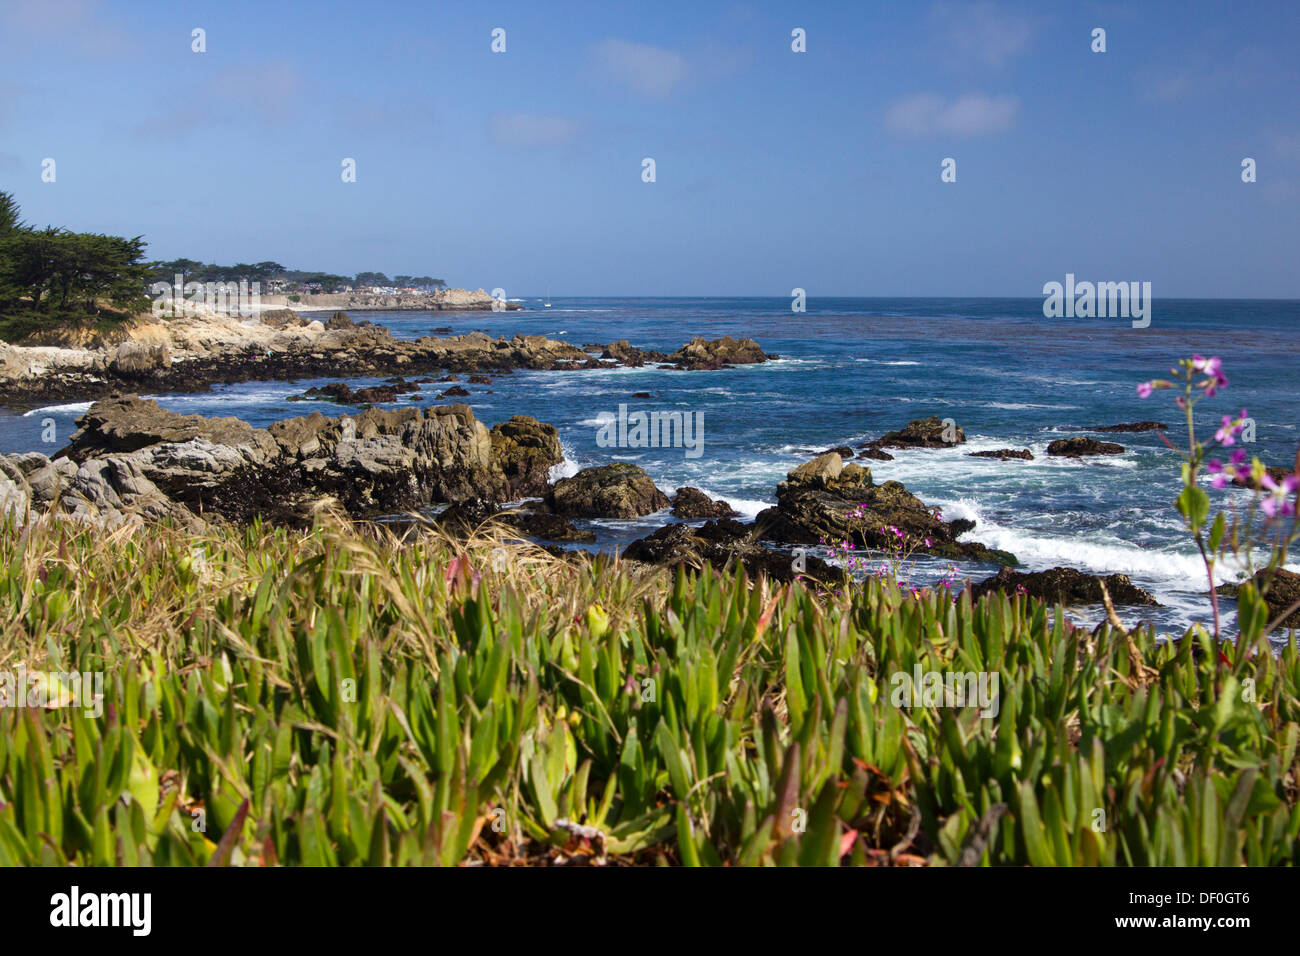 Monterey Bay on Central Coast of California - Stock Image